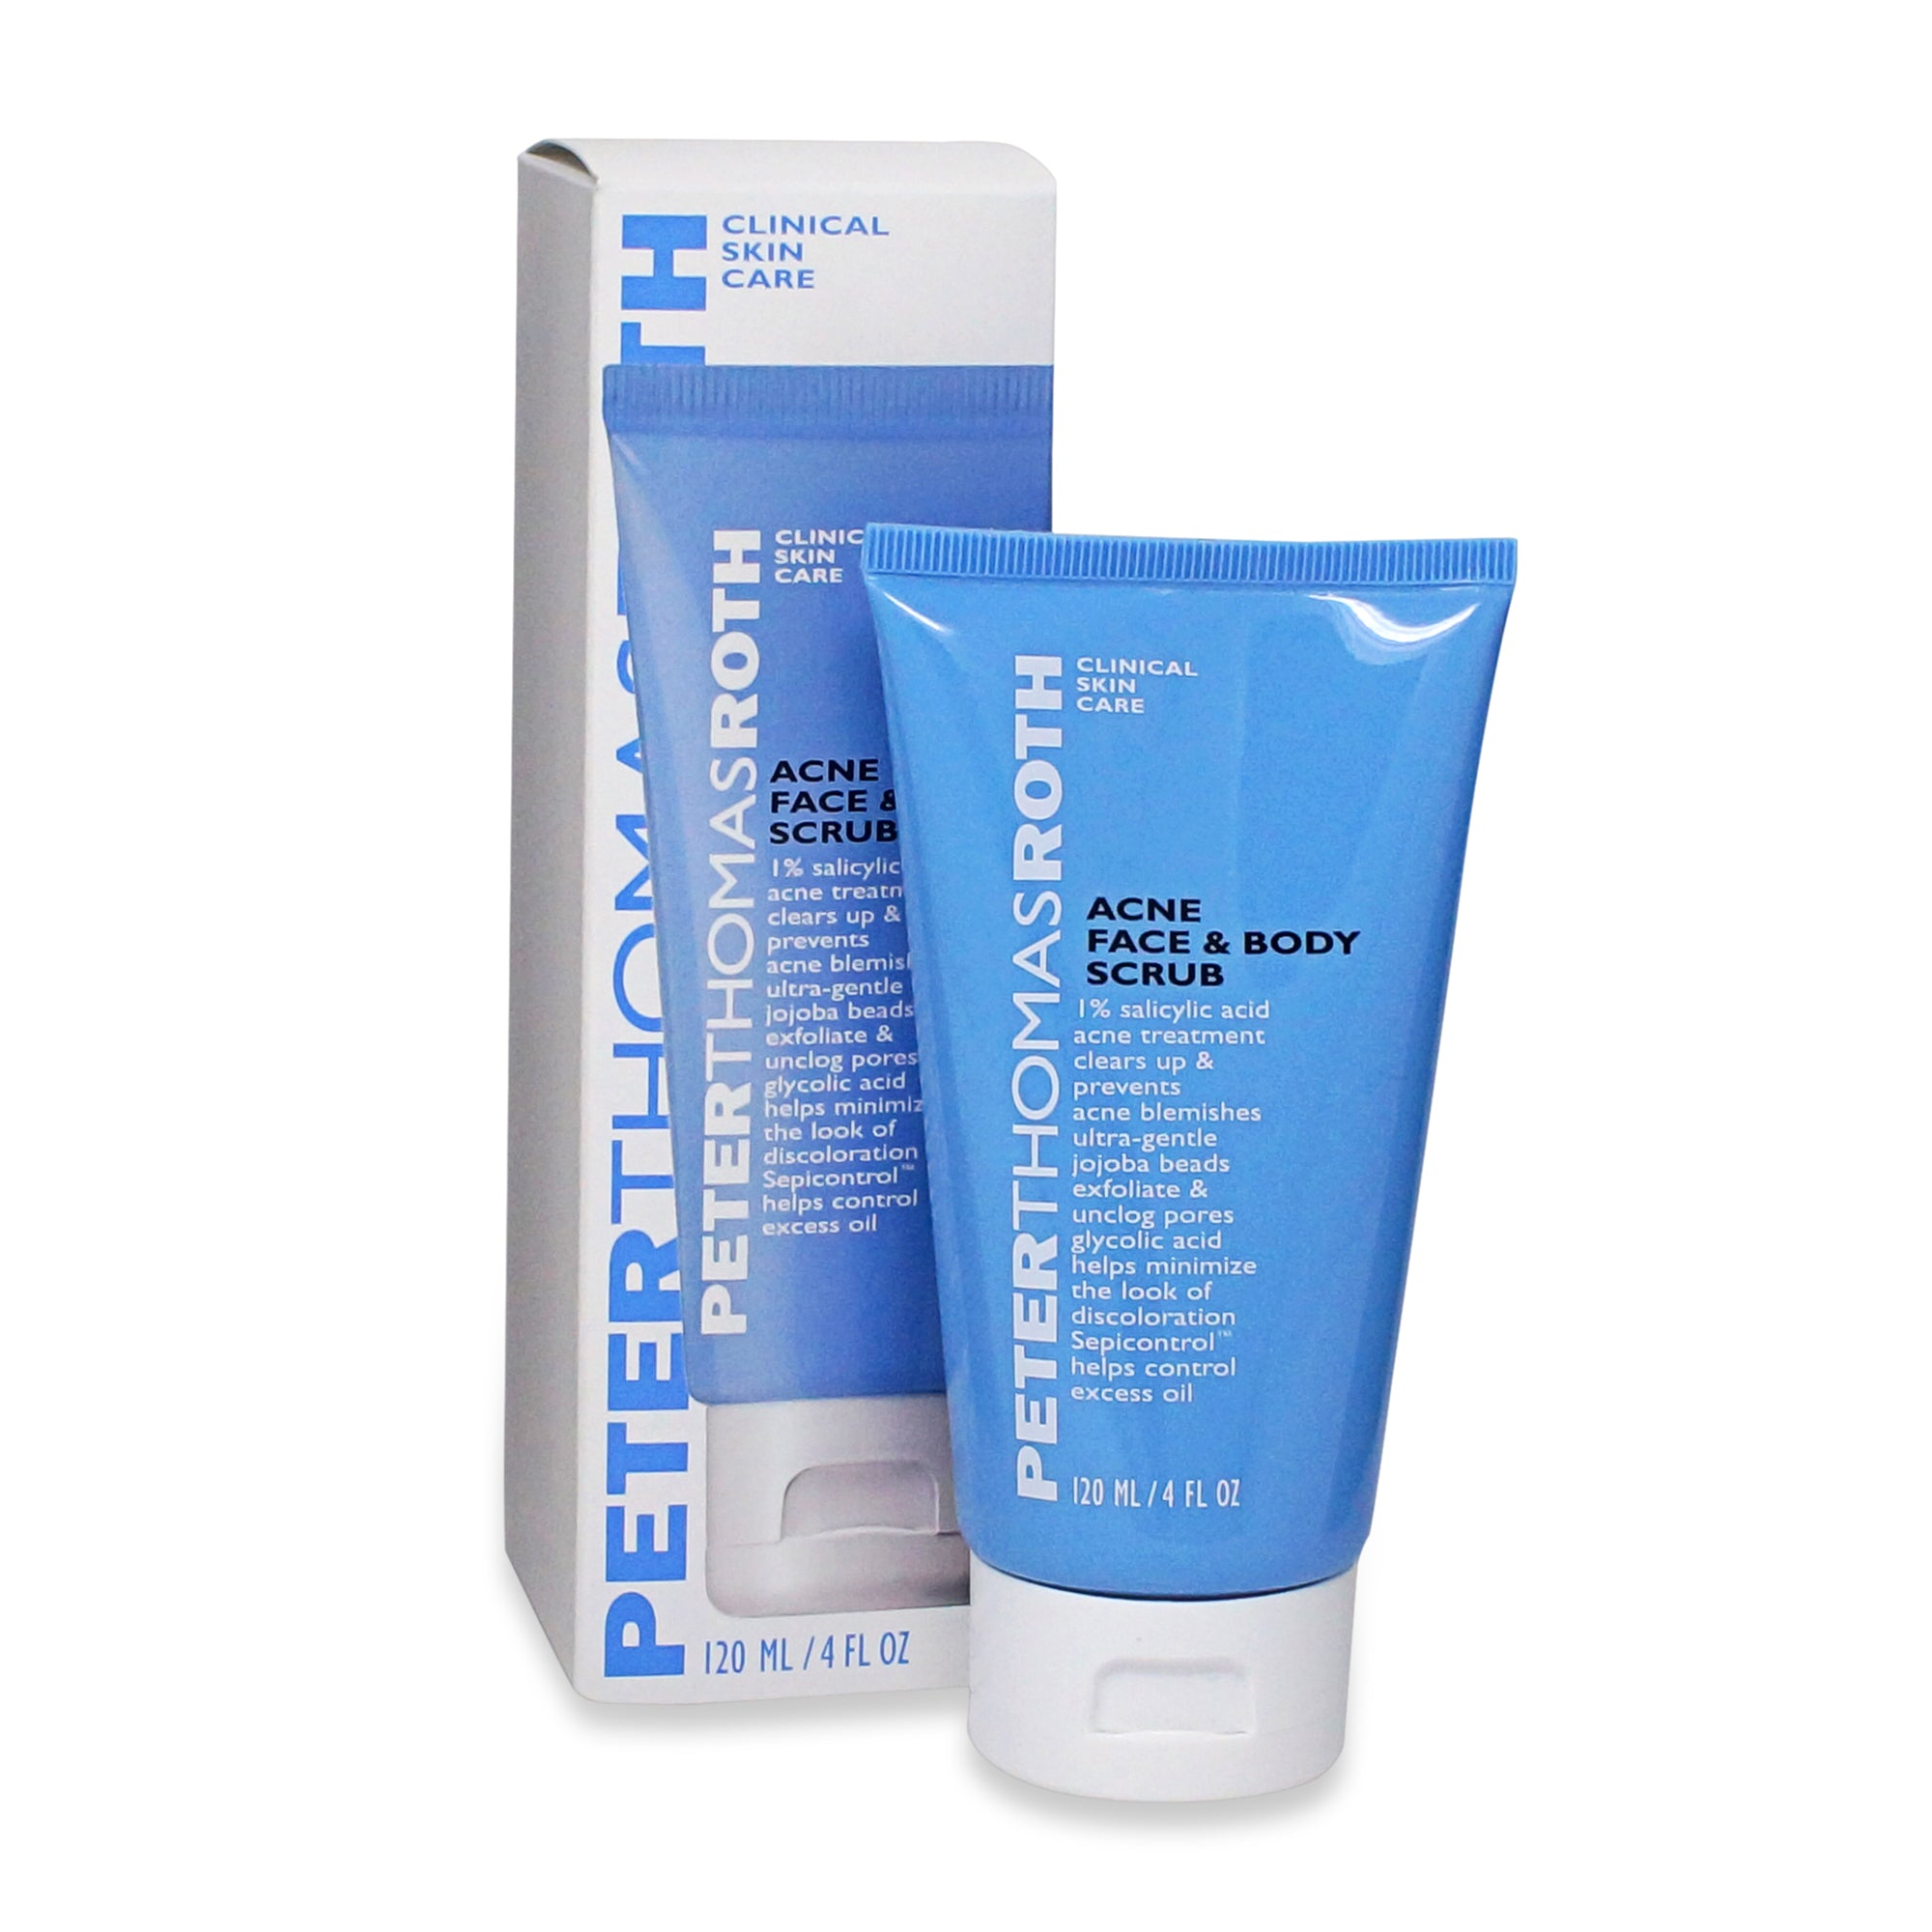 PETER THOMAS ROTH ~ ACNE FACE AND BODY SCRUB ~ 4 Oz